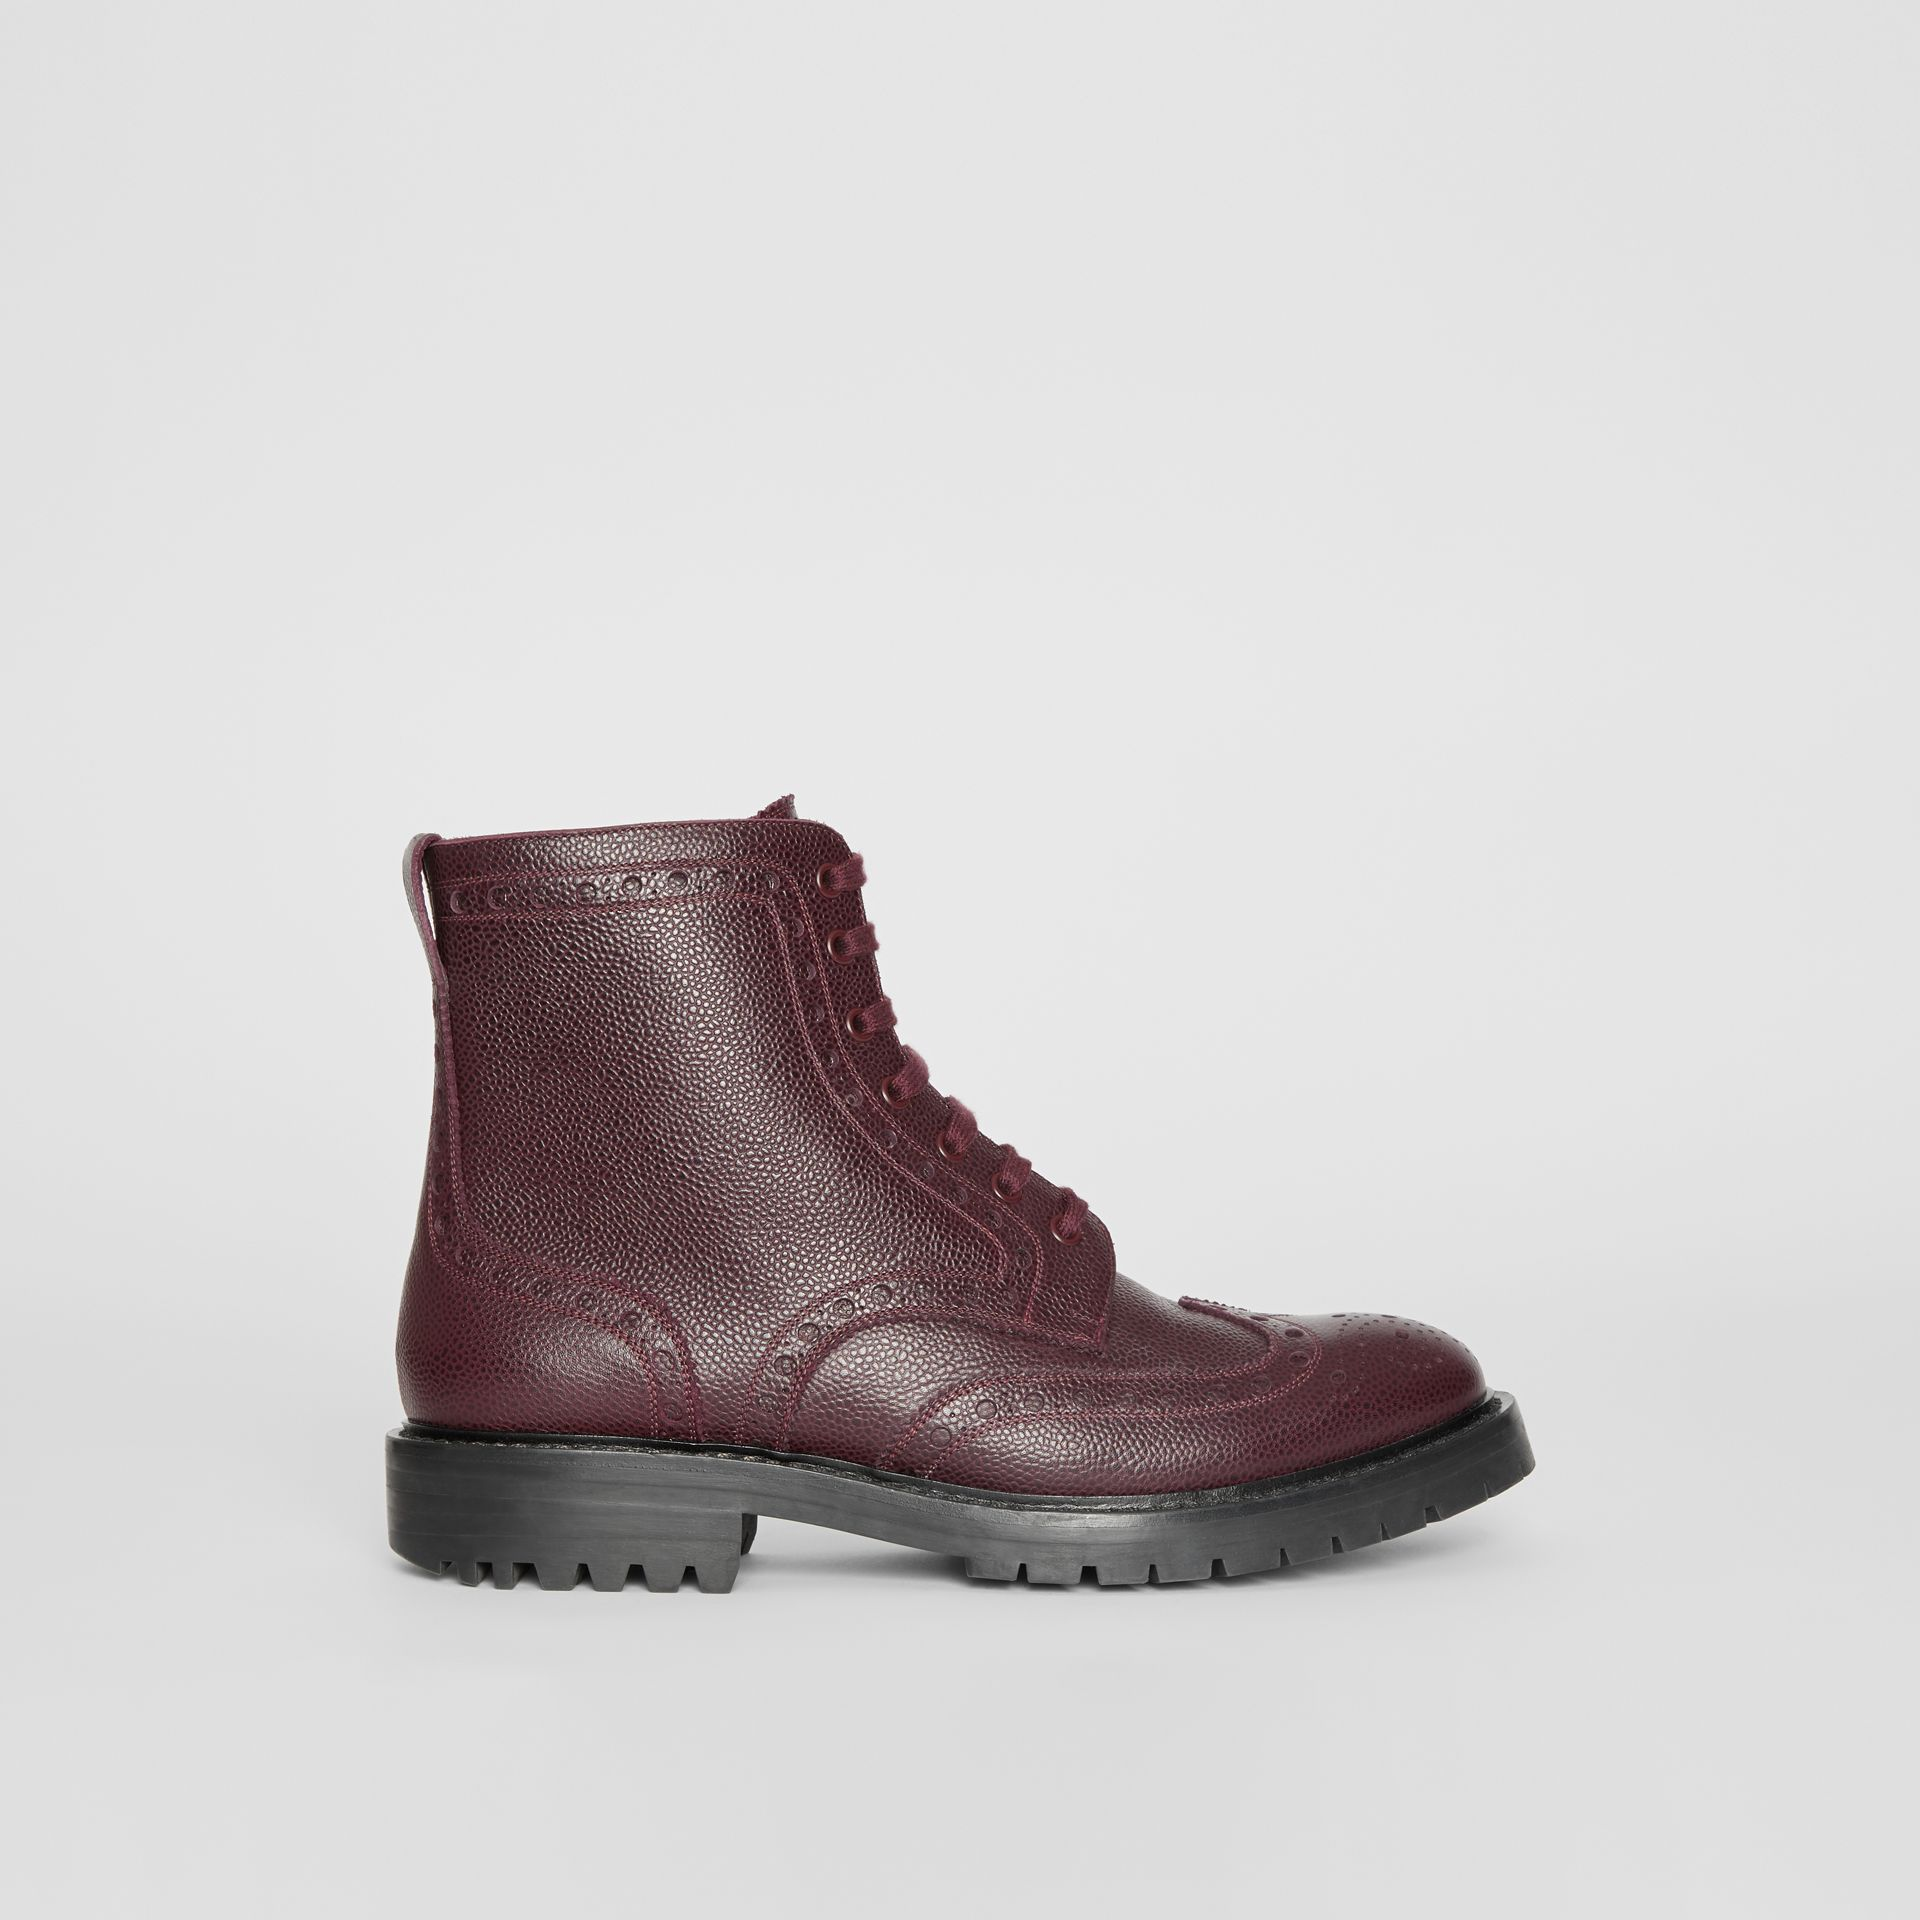 Brogue Detail Grainy Leather Boots in Bordeaux - Men | Burberry United Kingdom - gallery image 5